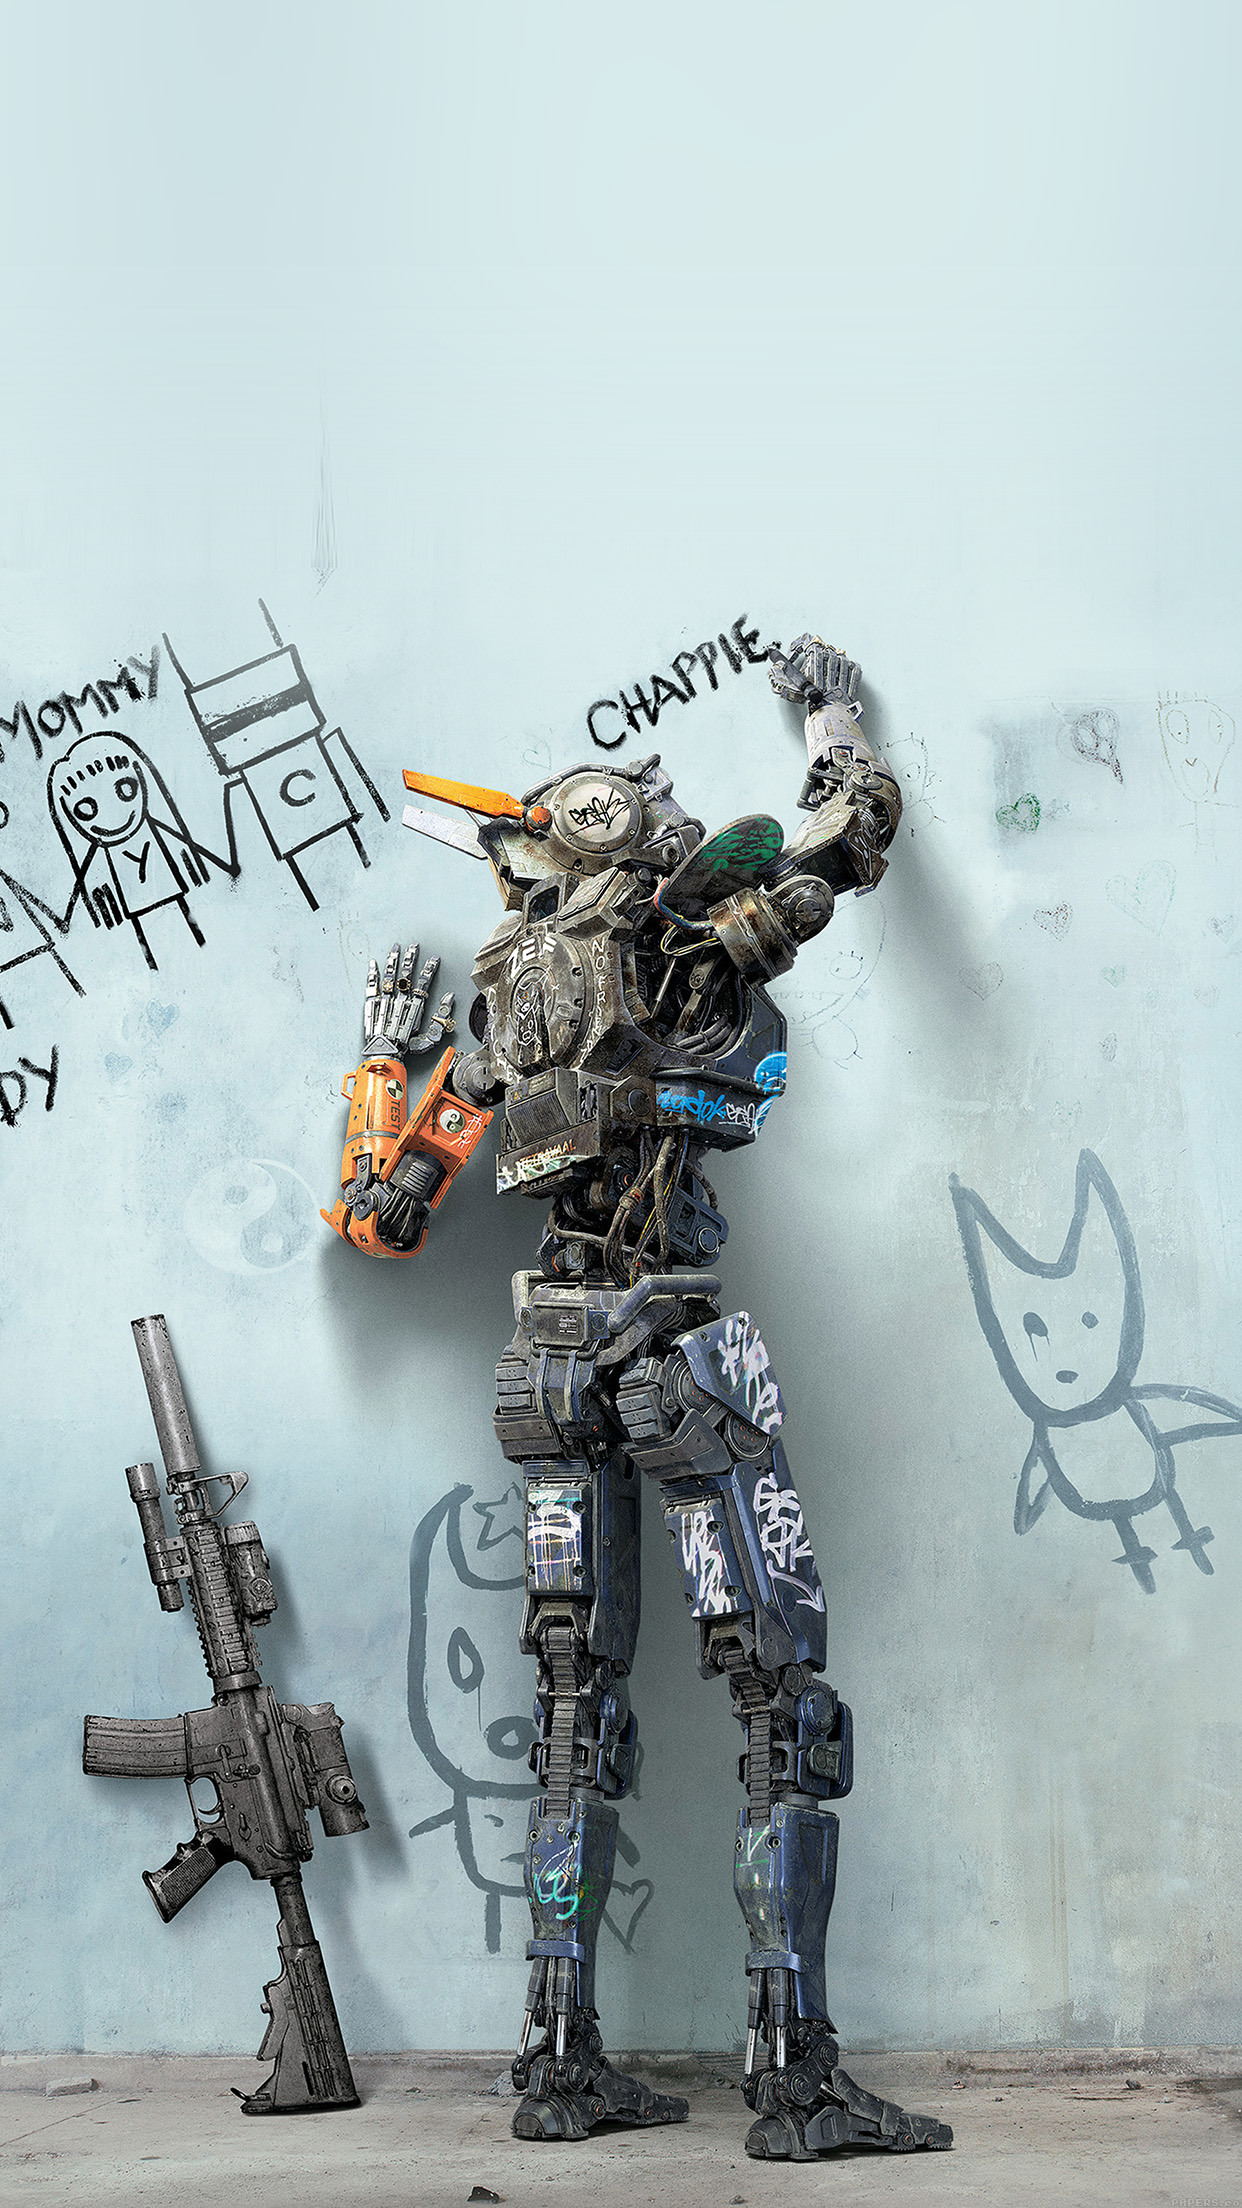 3d Parallax Wallpapers Androod Ak58 Chappie Robot Art Film Poster